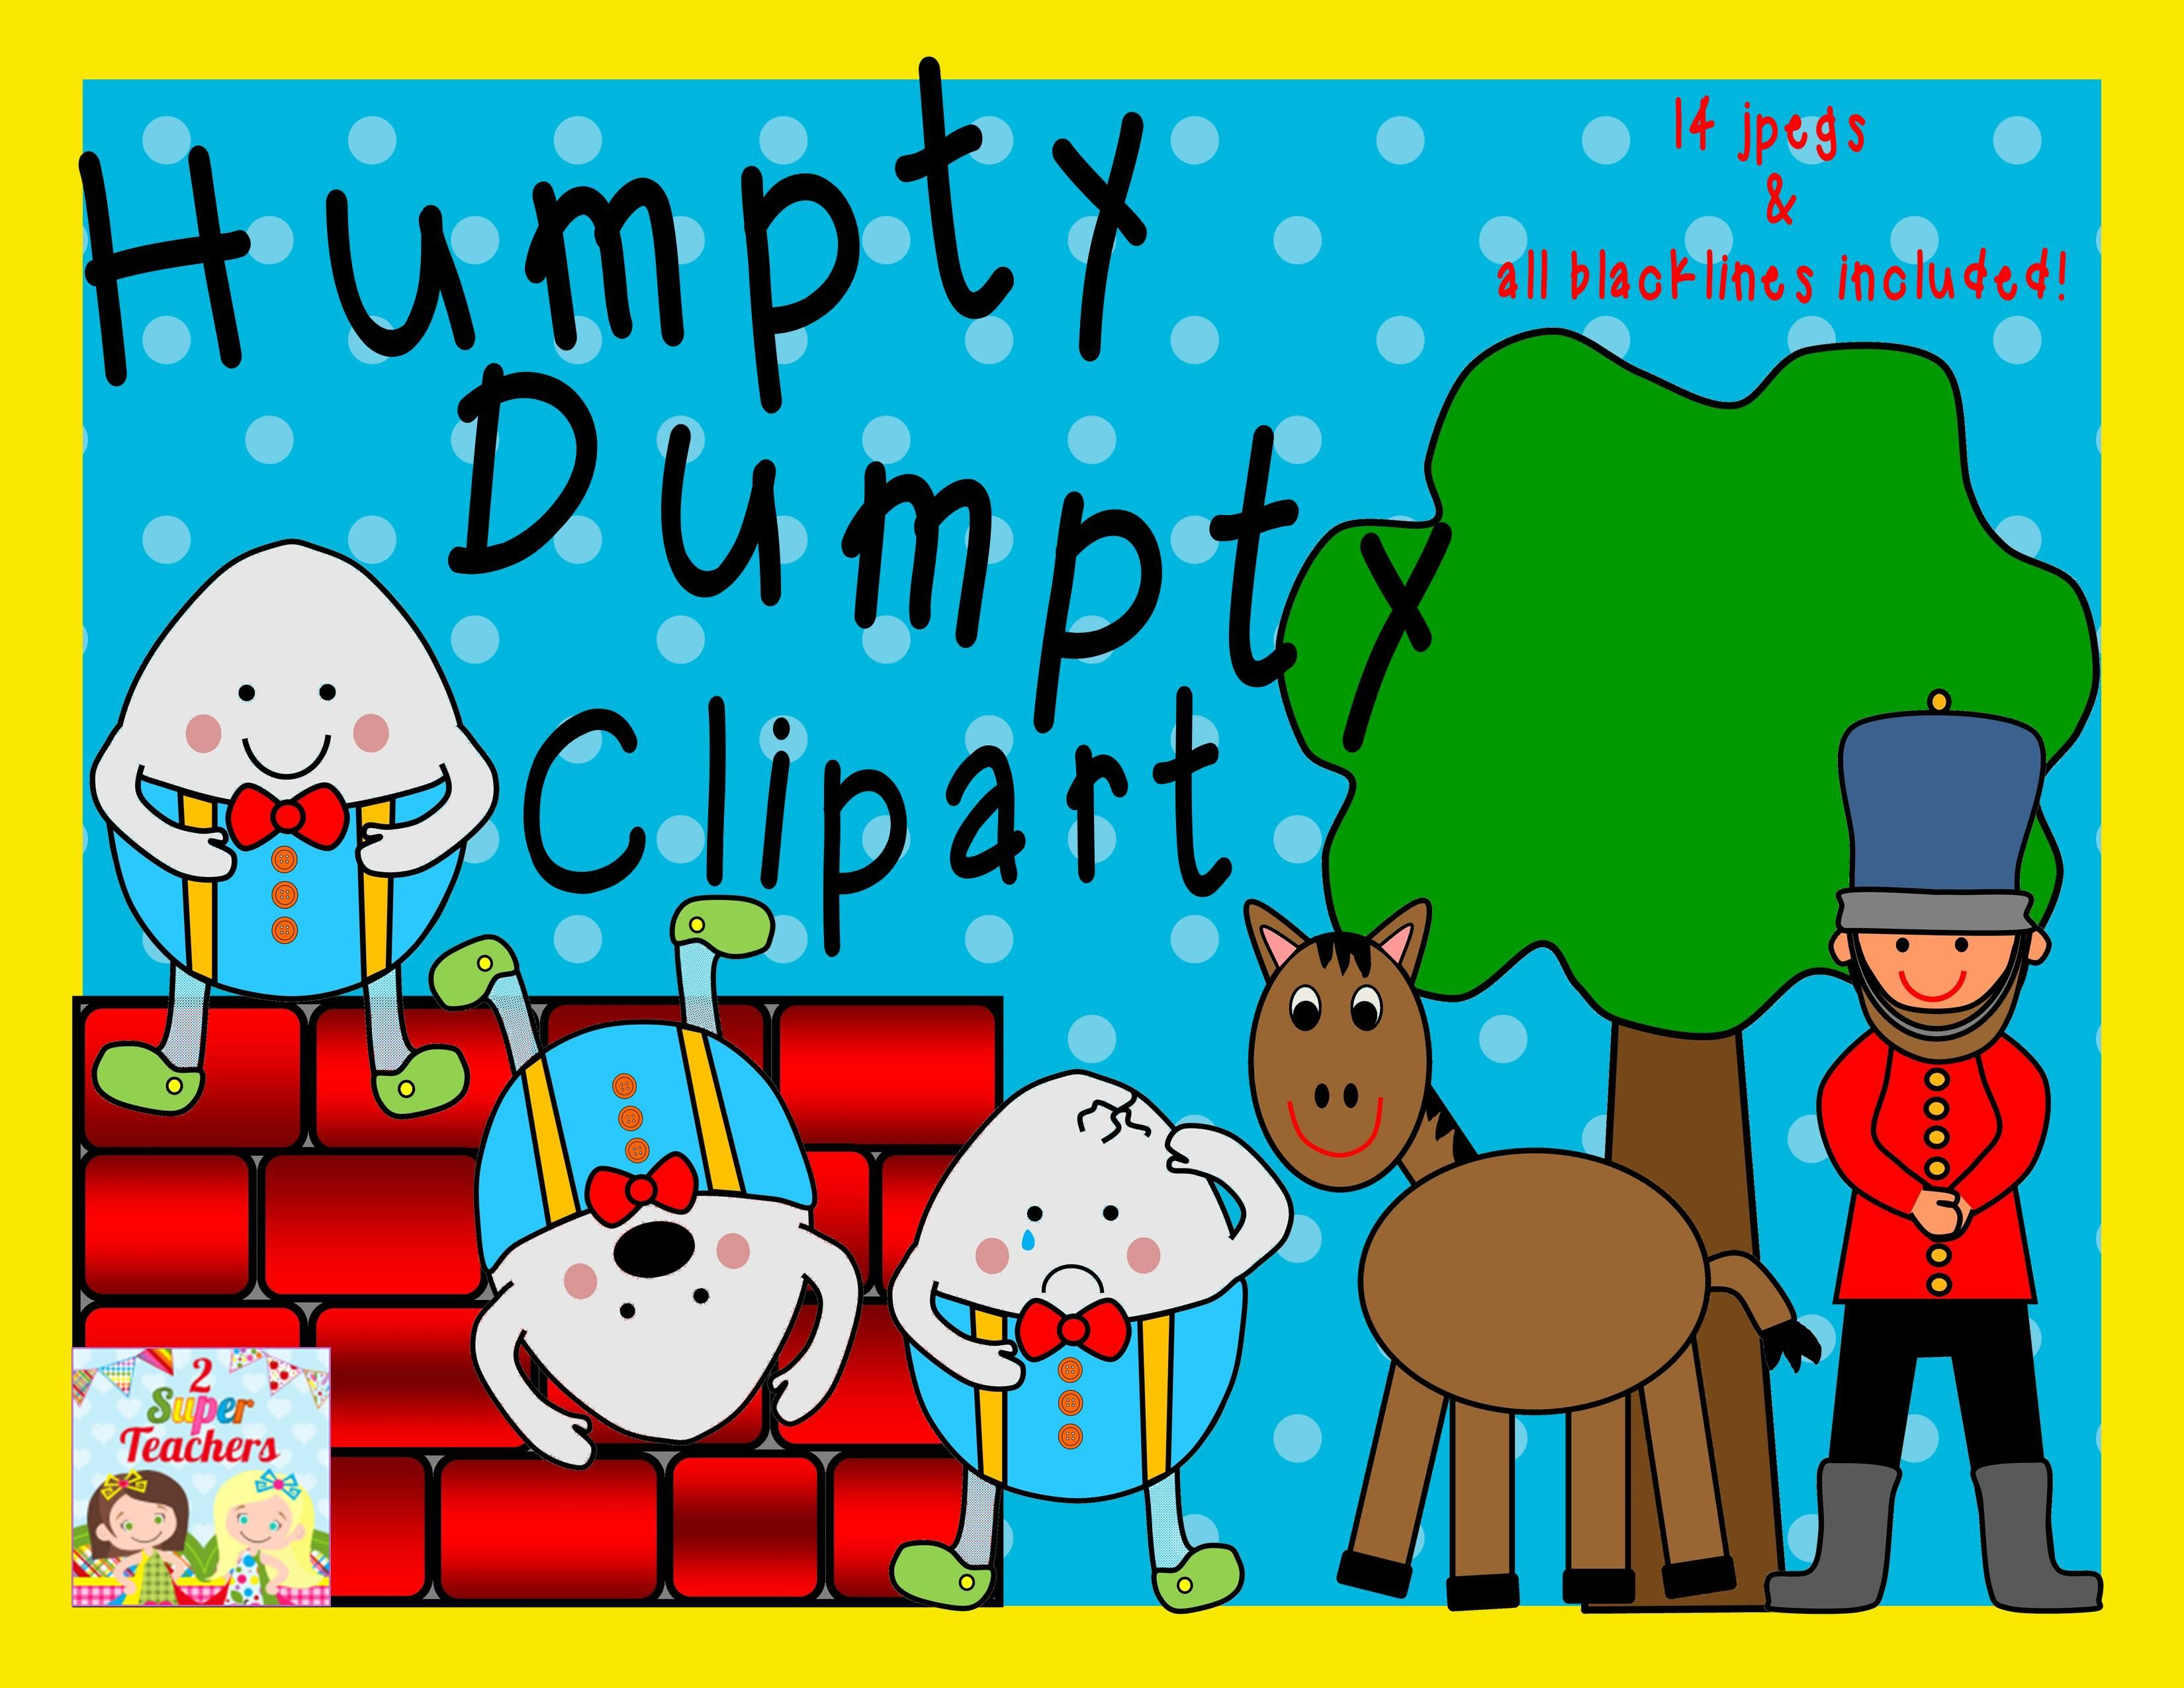 Humpty dumpty clipart activity. Pin by victoria saied